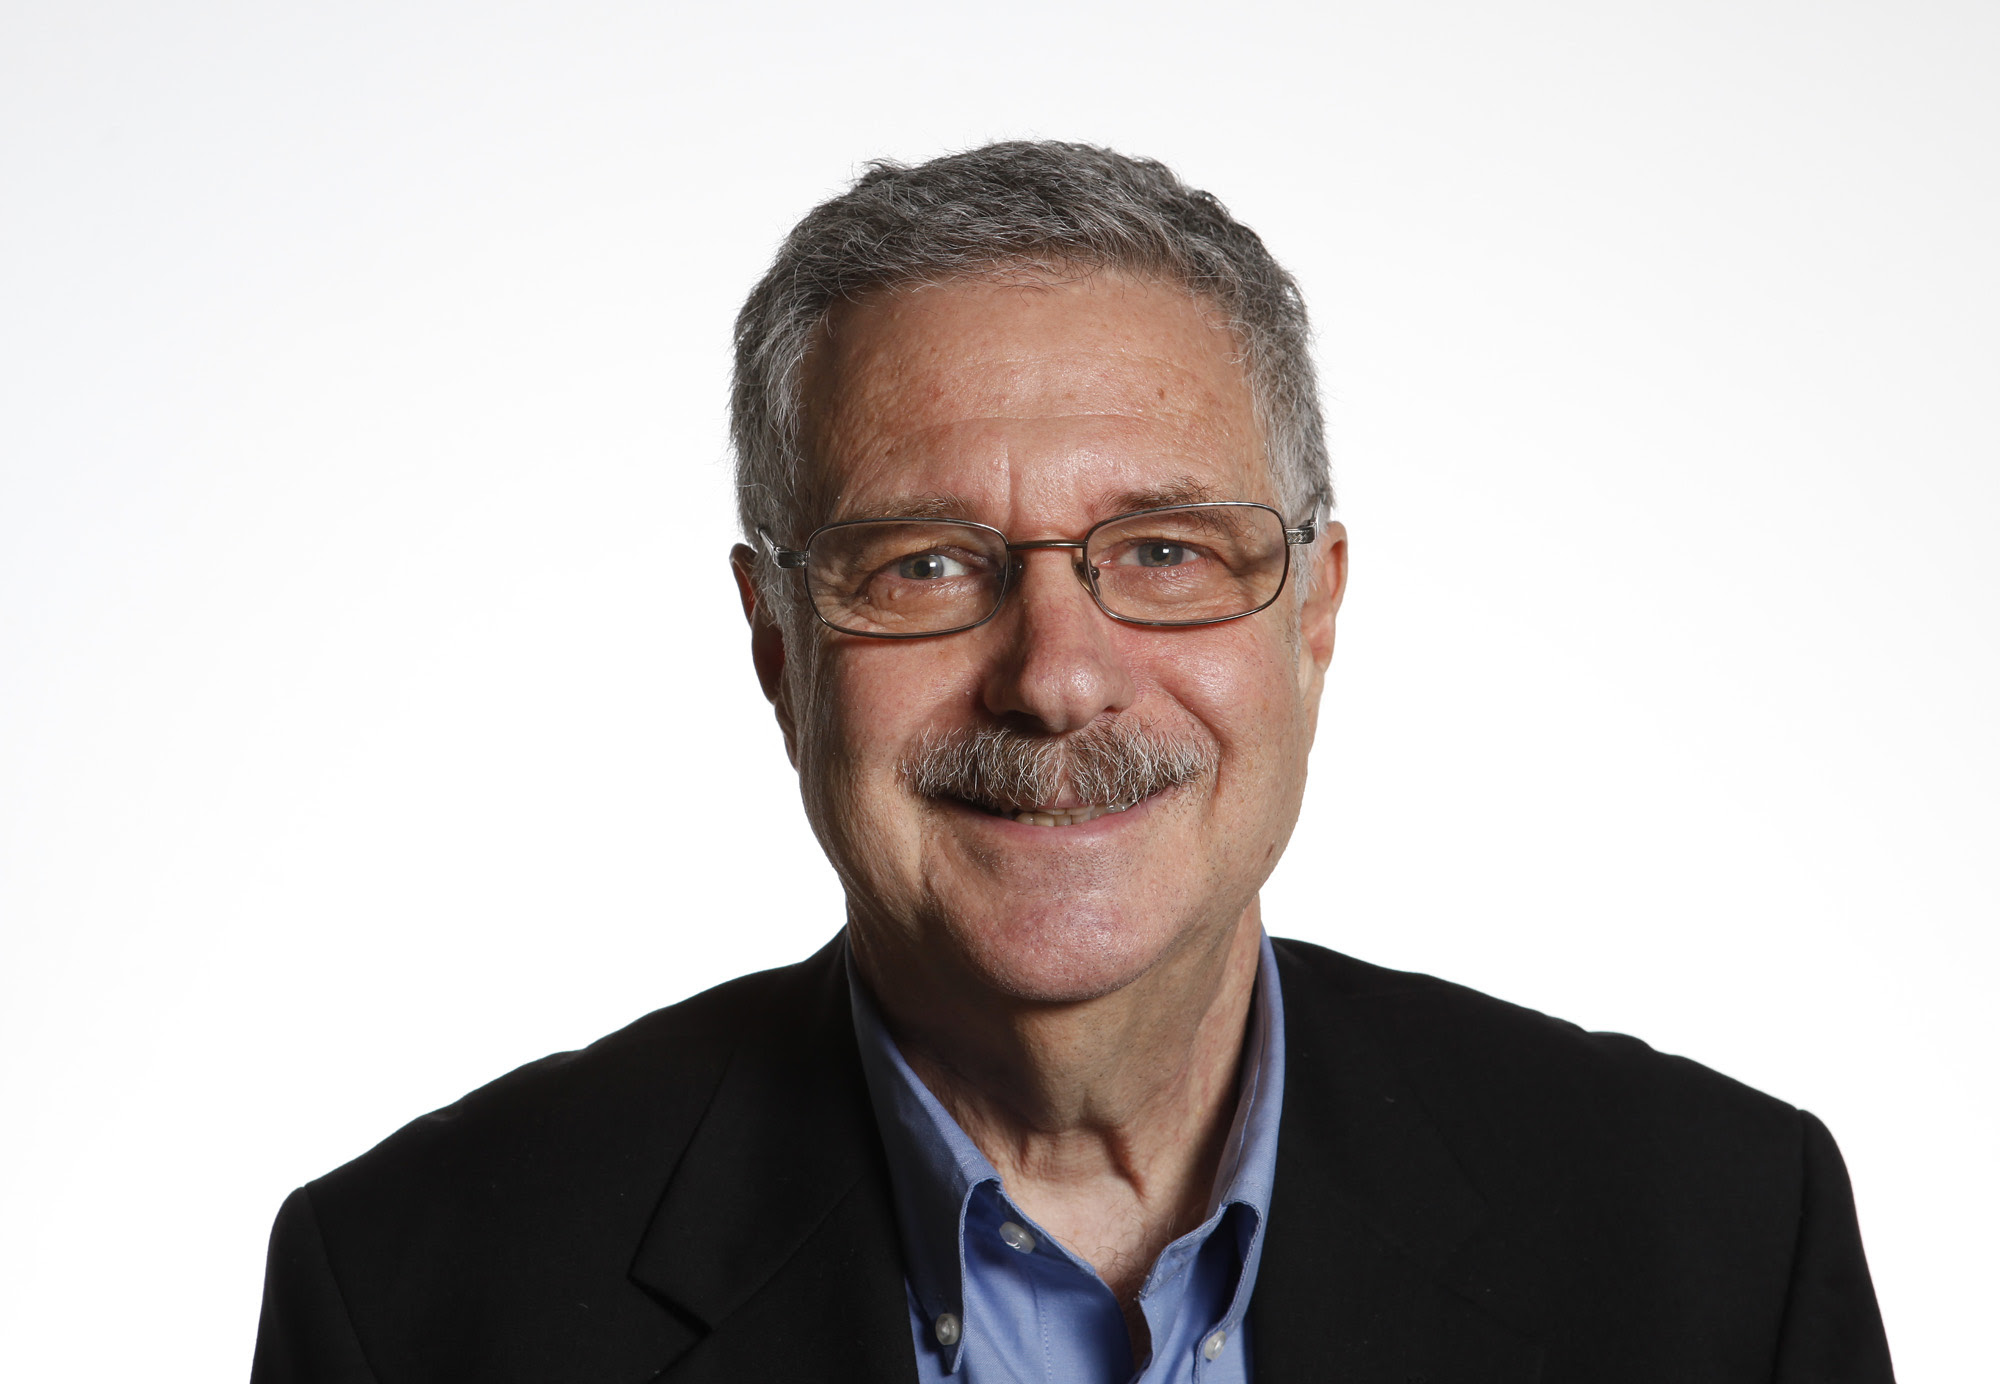 Larry Magid: Social media risks and solutions can be nuanced